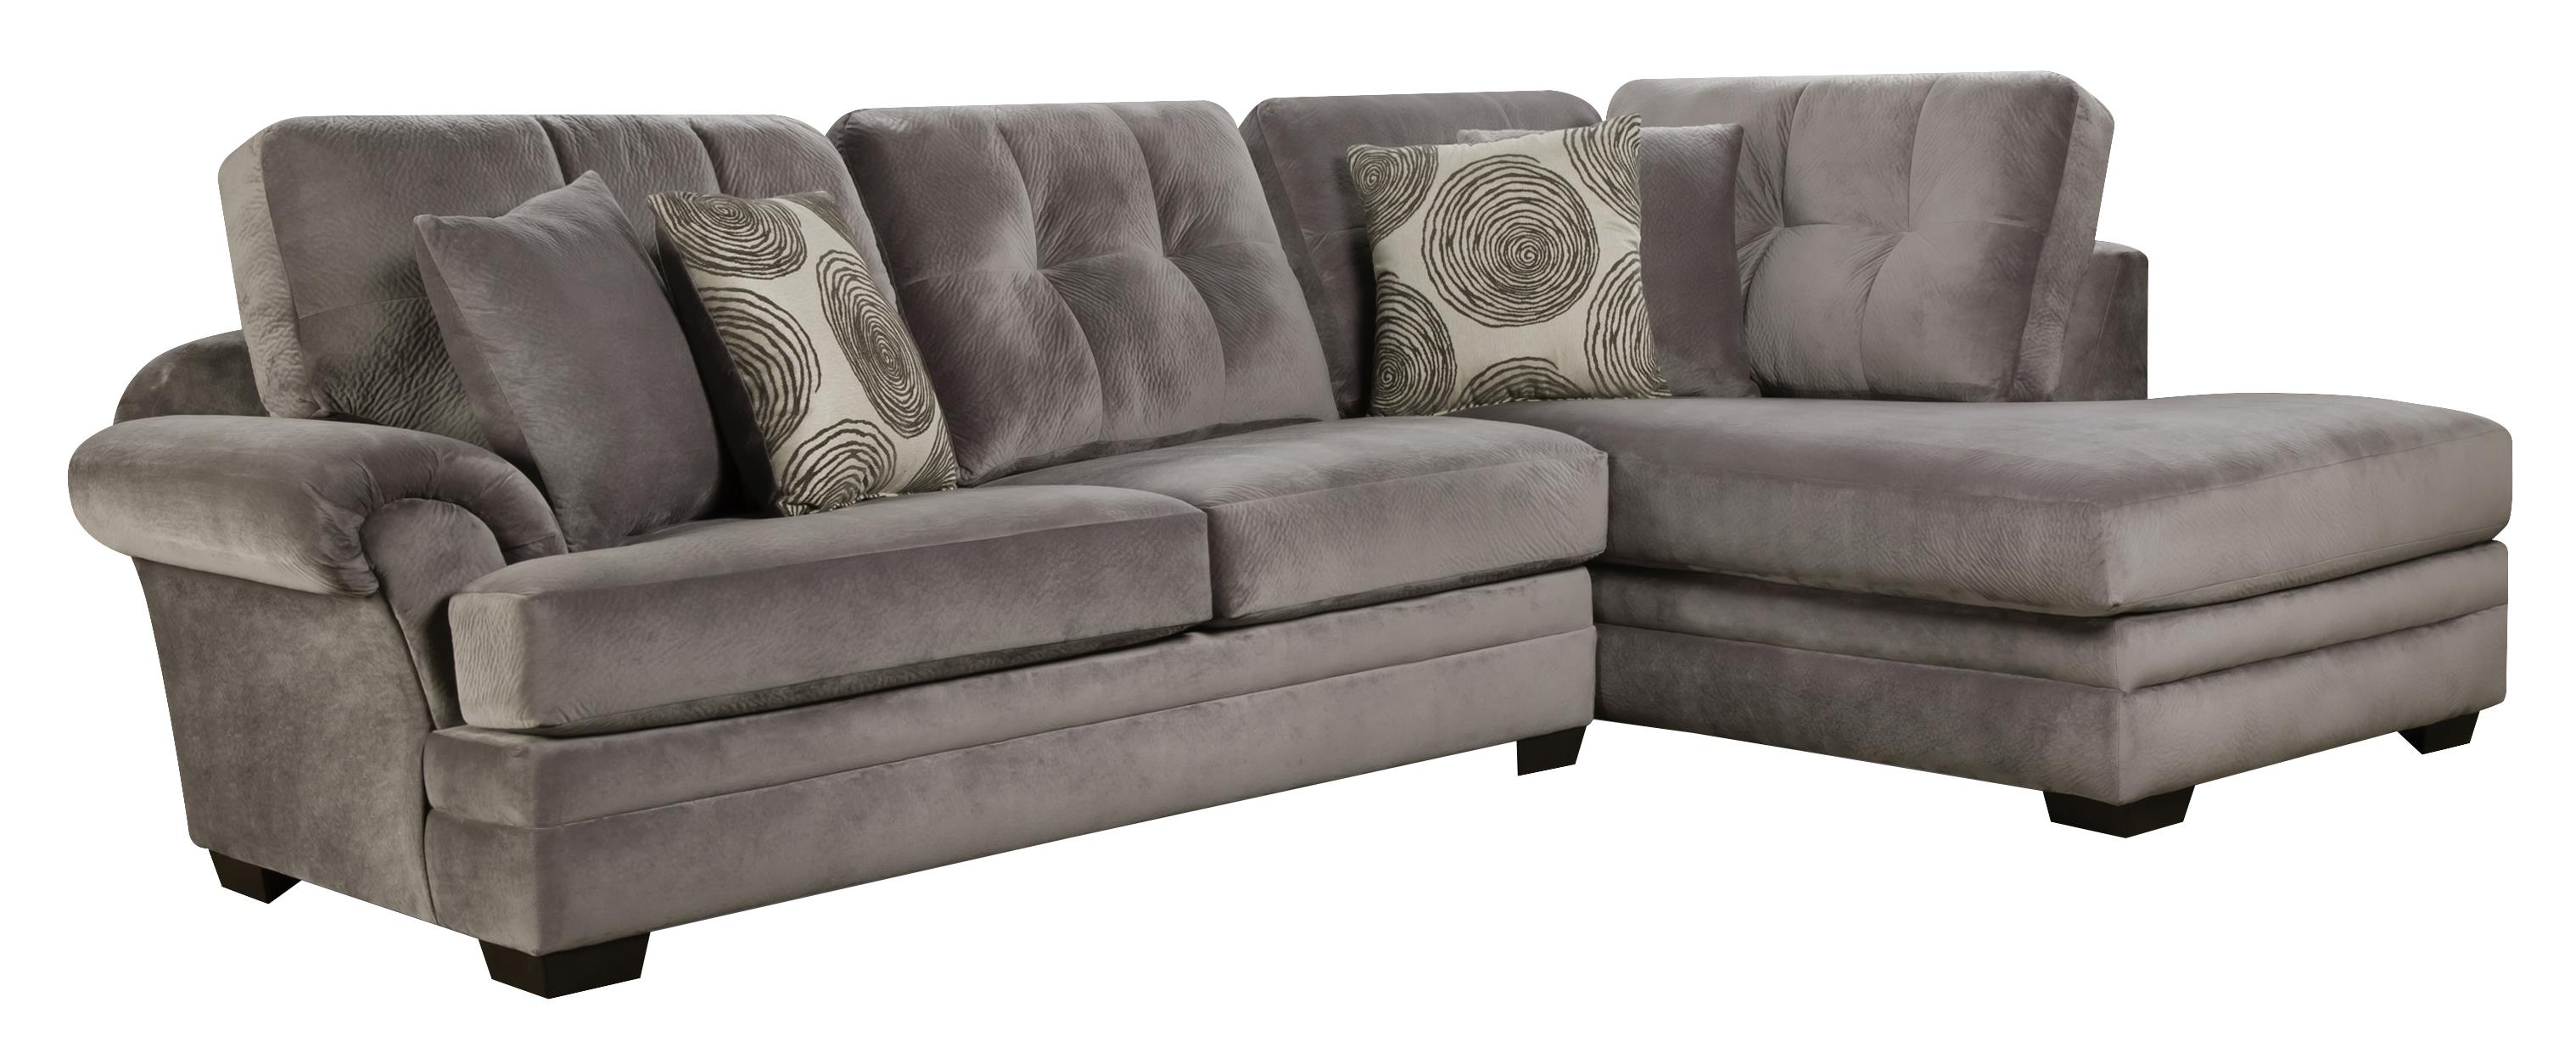 Sectional Sofa with Chaise on right side by Corinthian